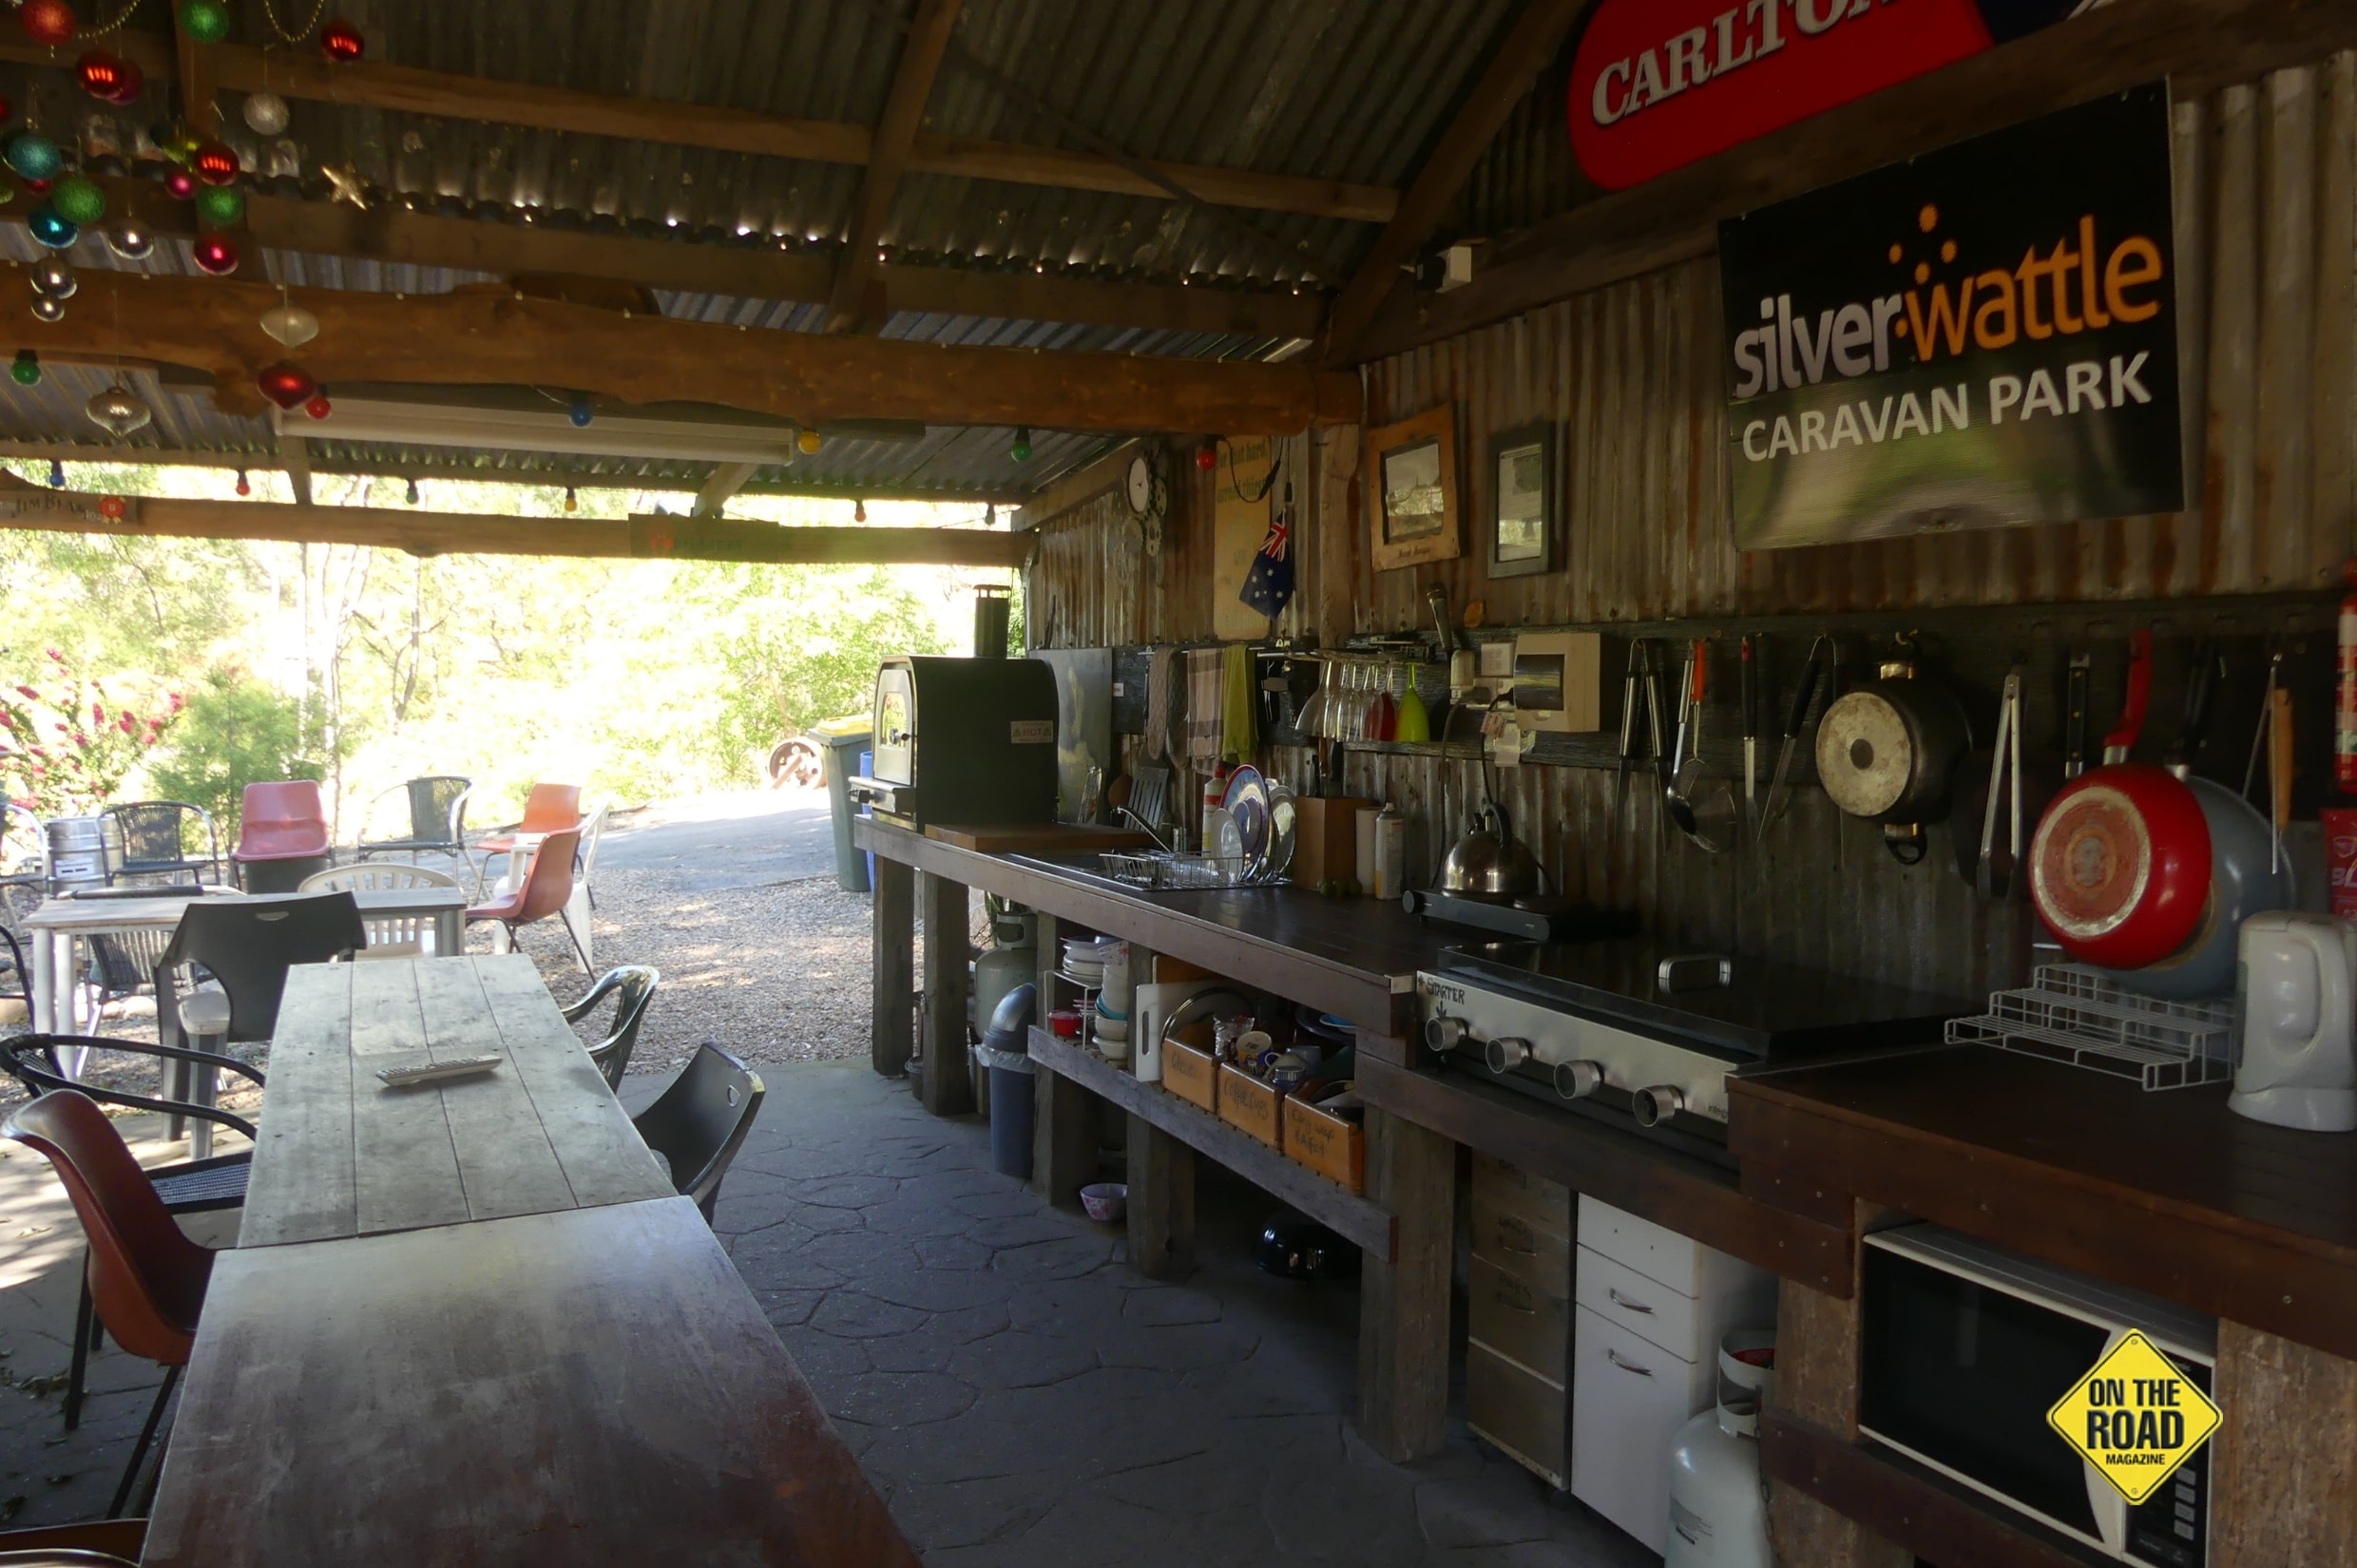 Happy hour is a highlight of the Silver Wattle Caravan Park